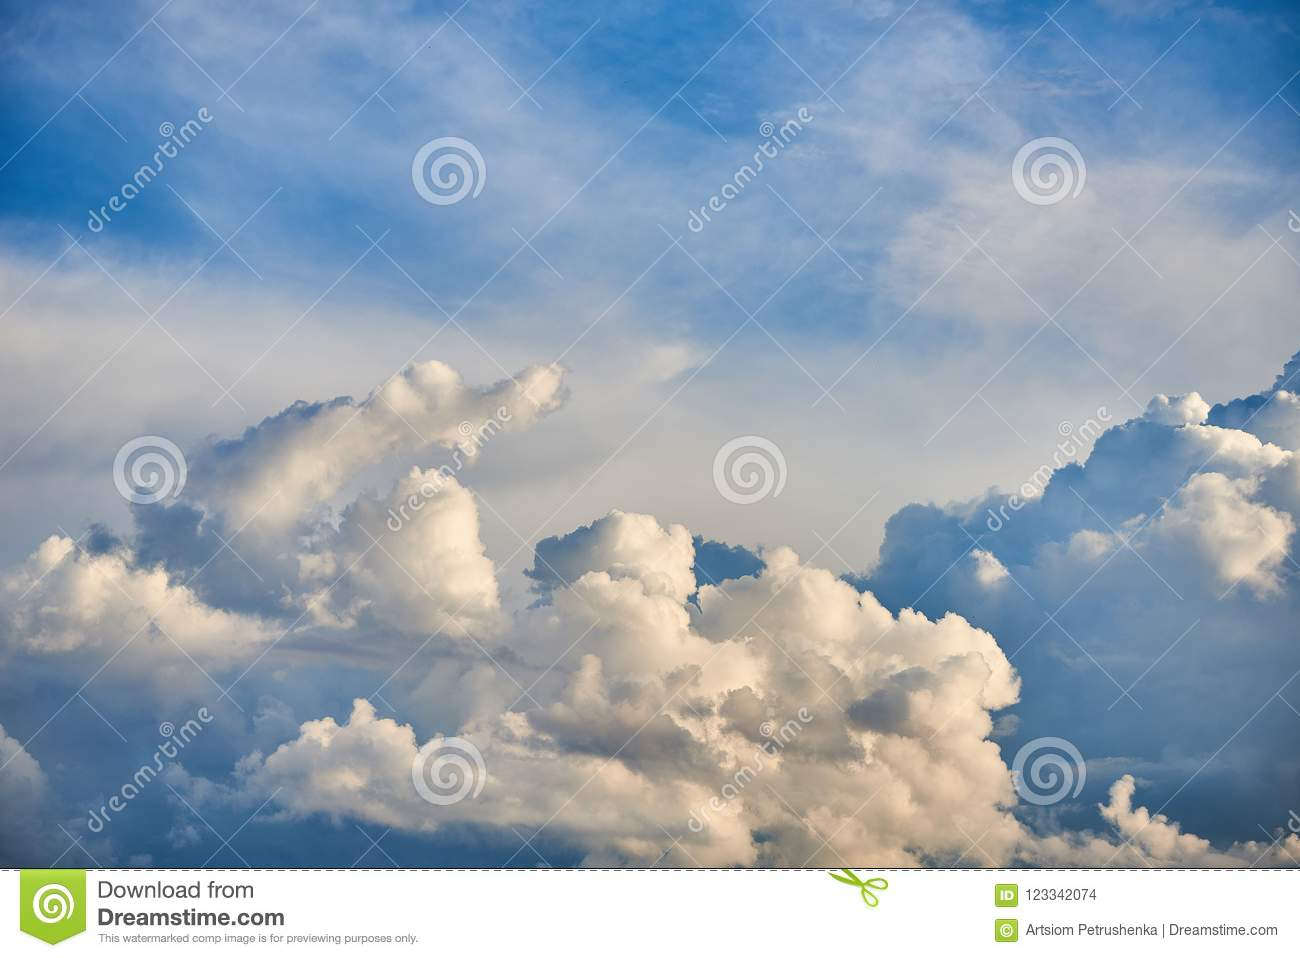 White Feathery, Volumetric Clouds  With The Sun  Stock Photo - Image